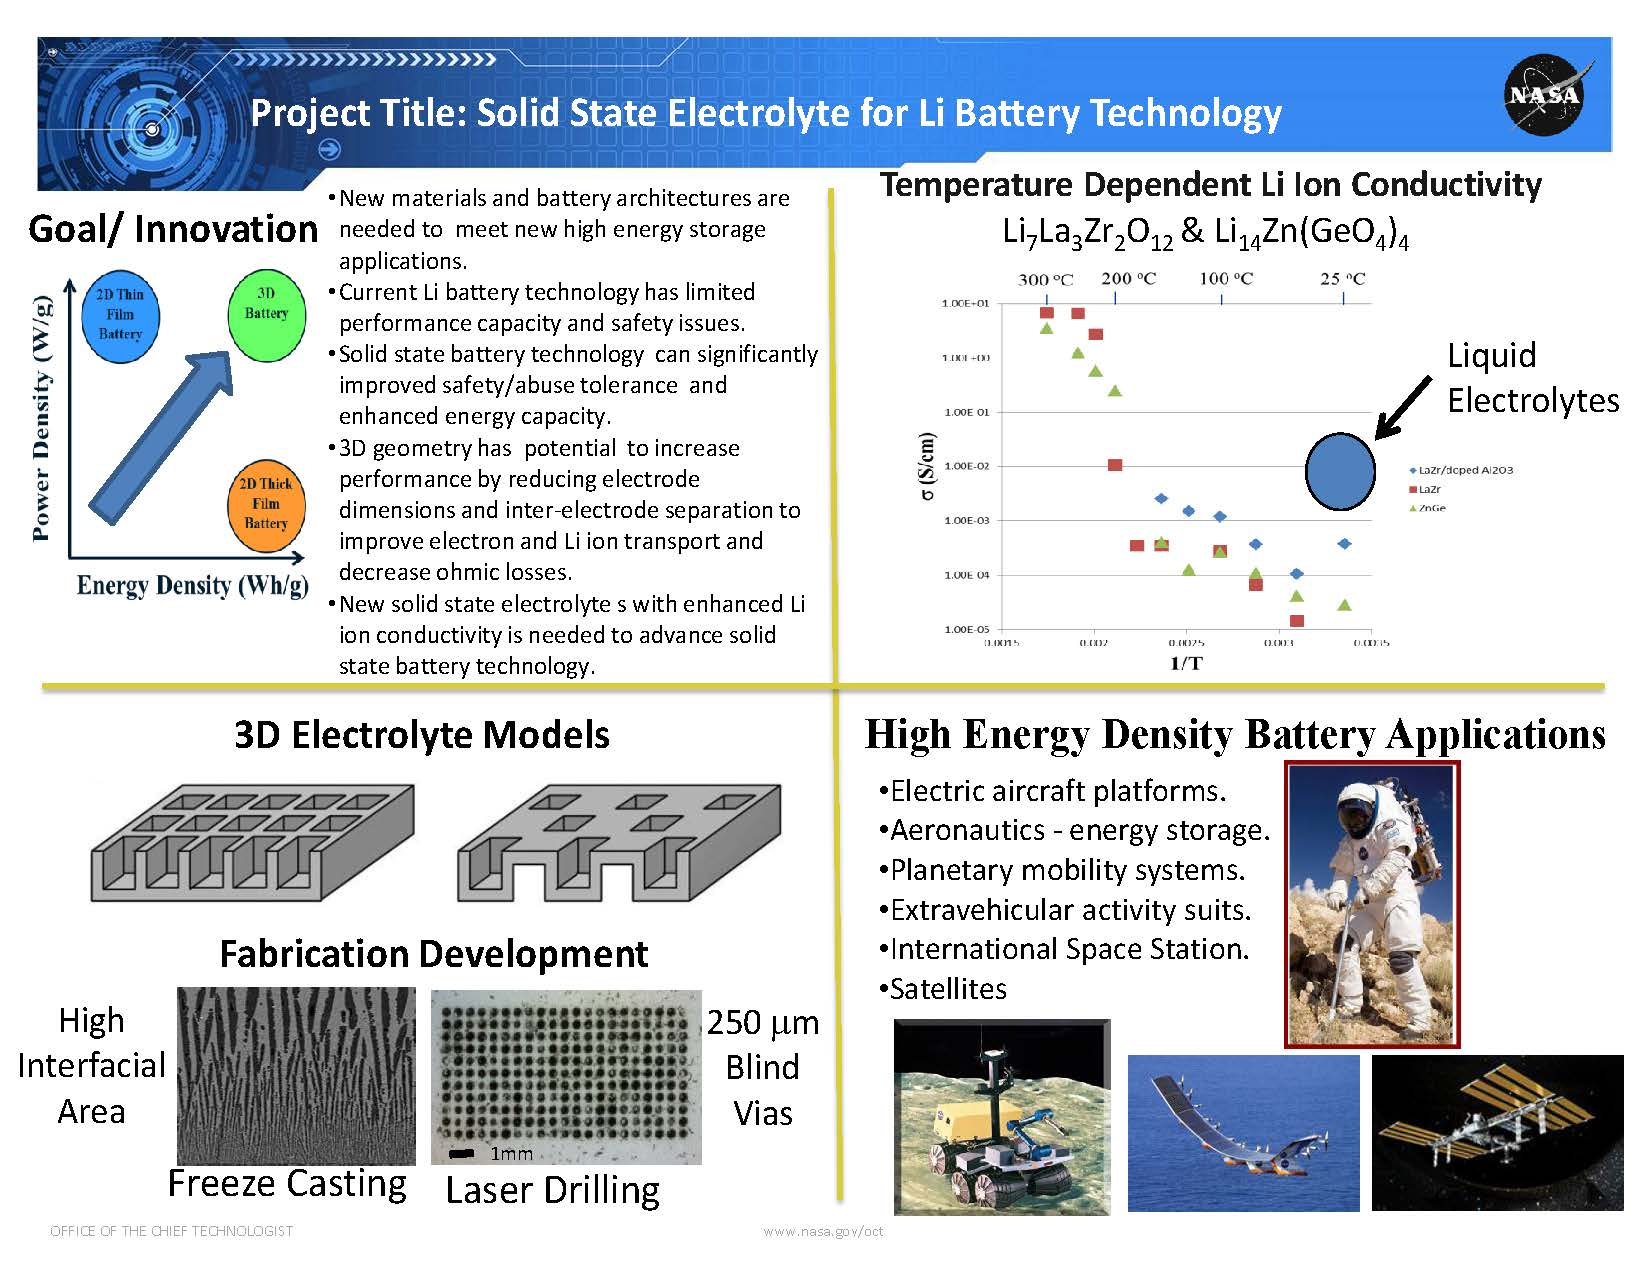 Solid State Electrolyte for Li Battery Technology Project